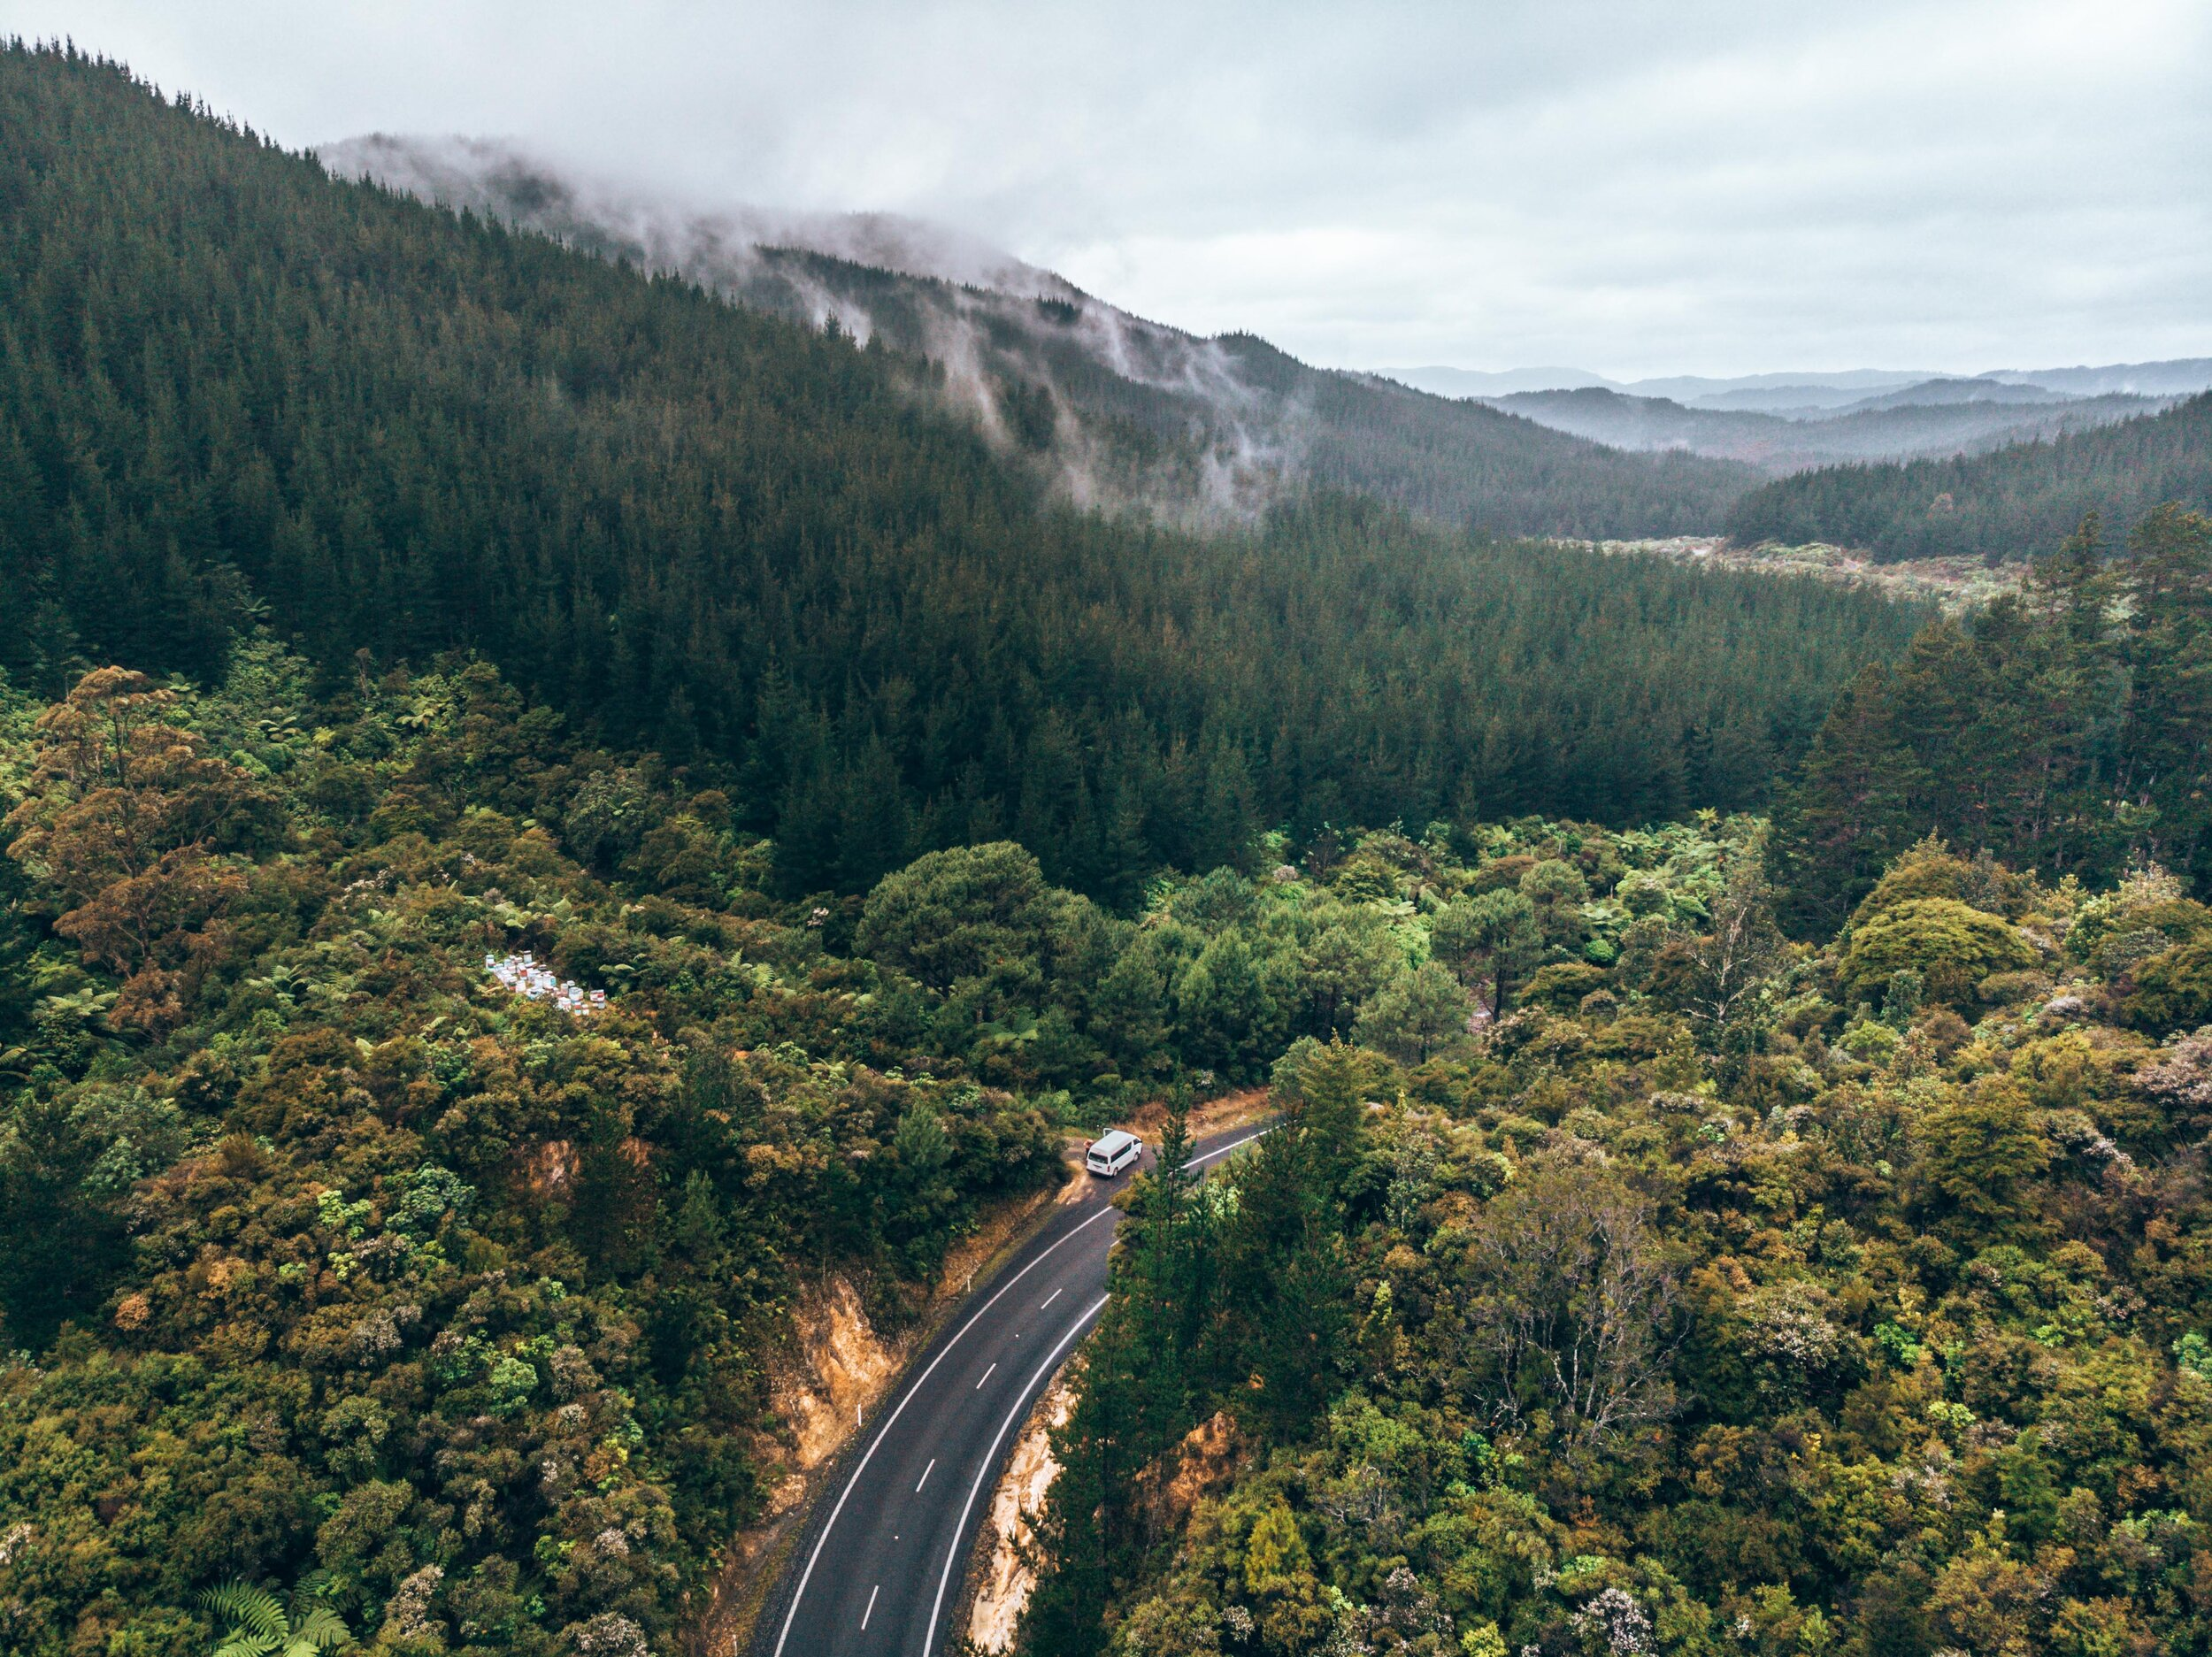 Moody Rainfall Shot Travel drone photography guide for beginners